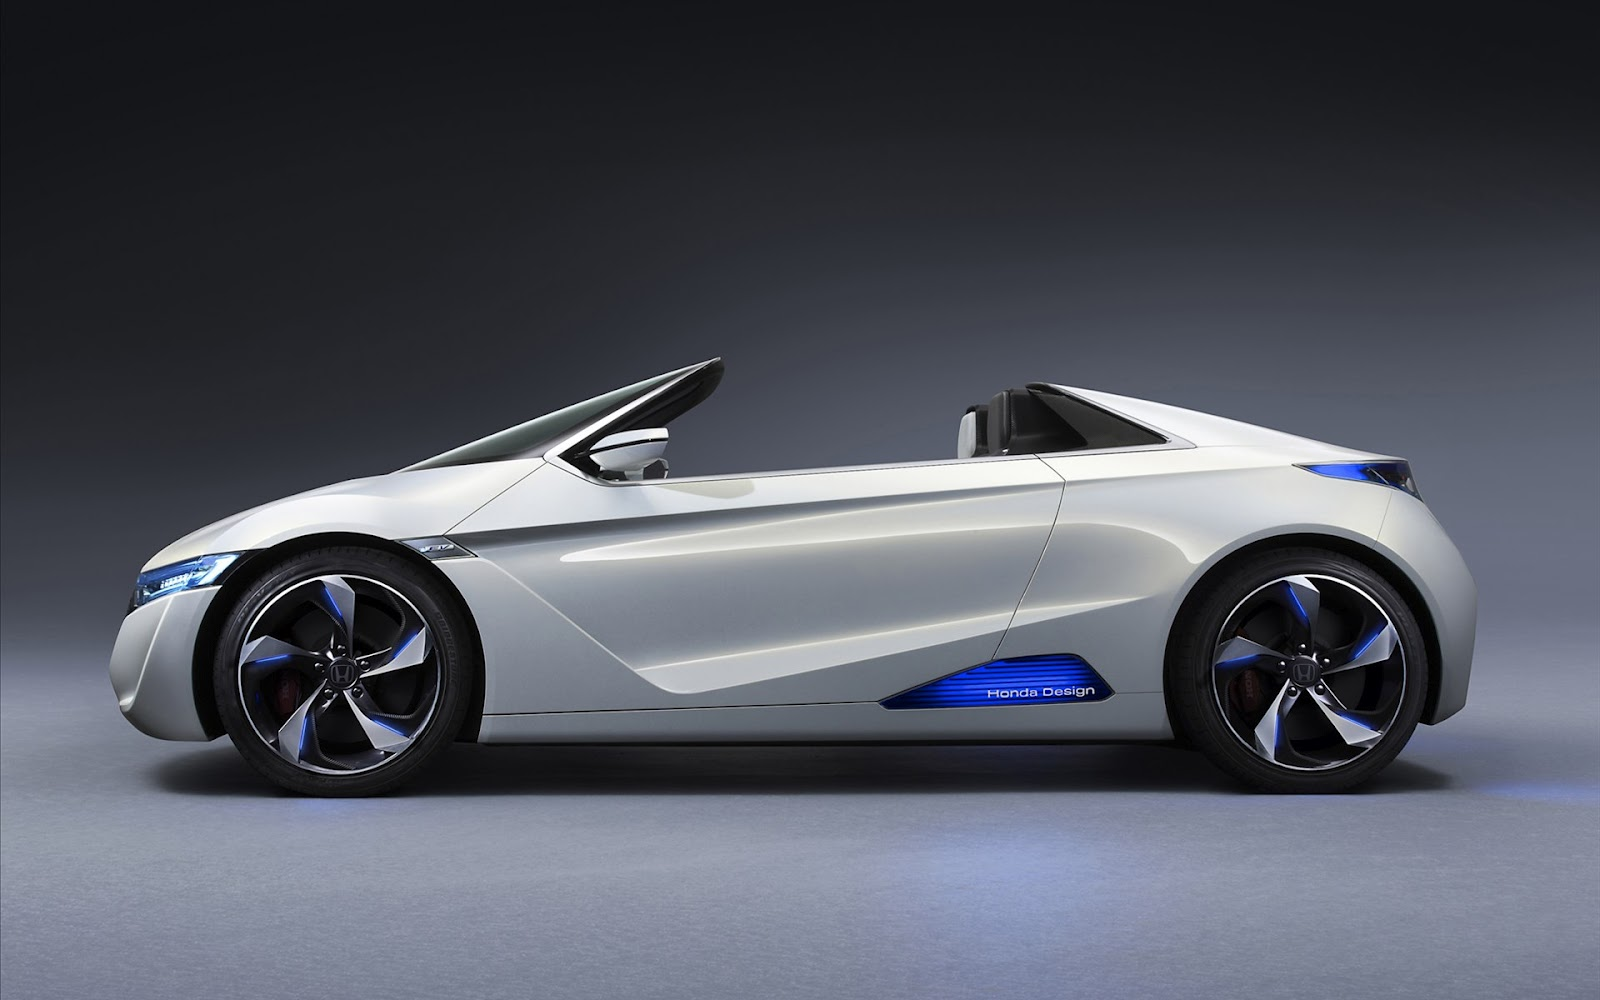 HD new wallpaper: honda concept car